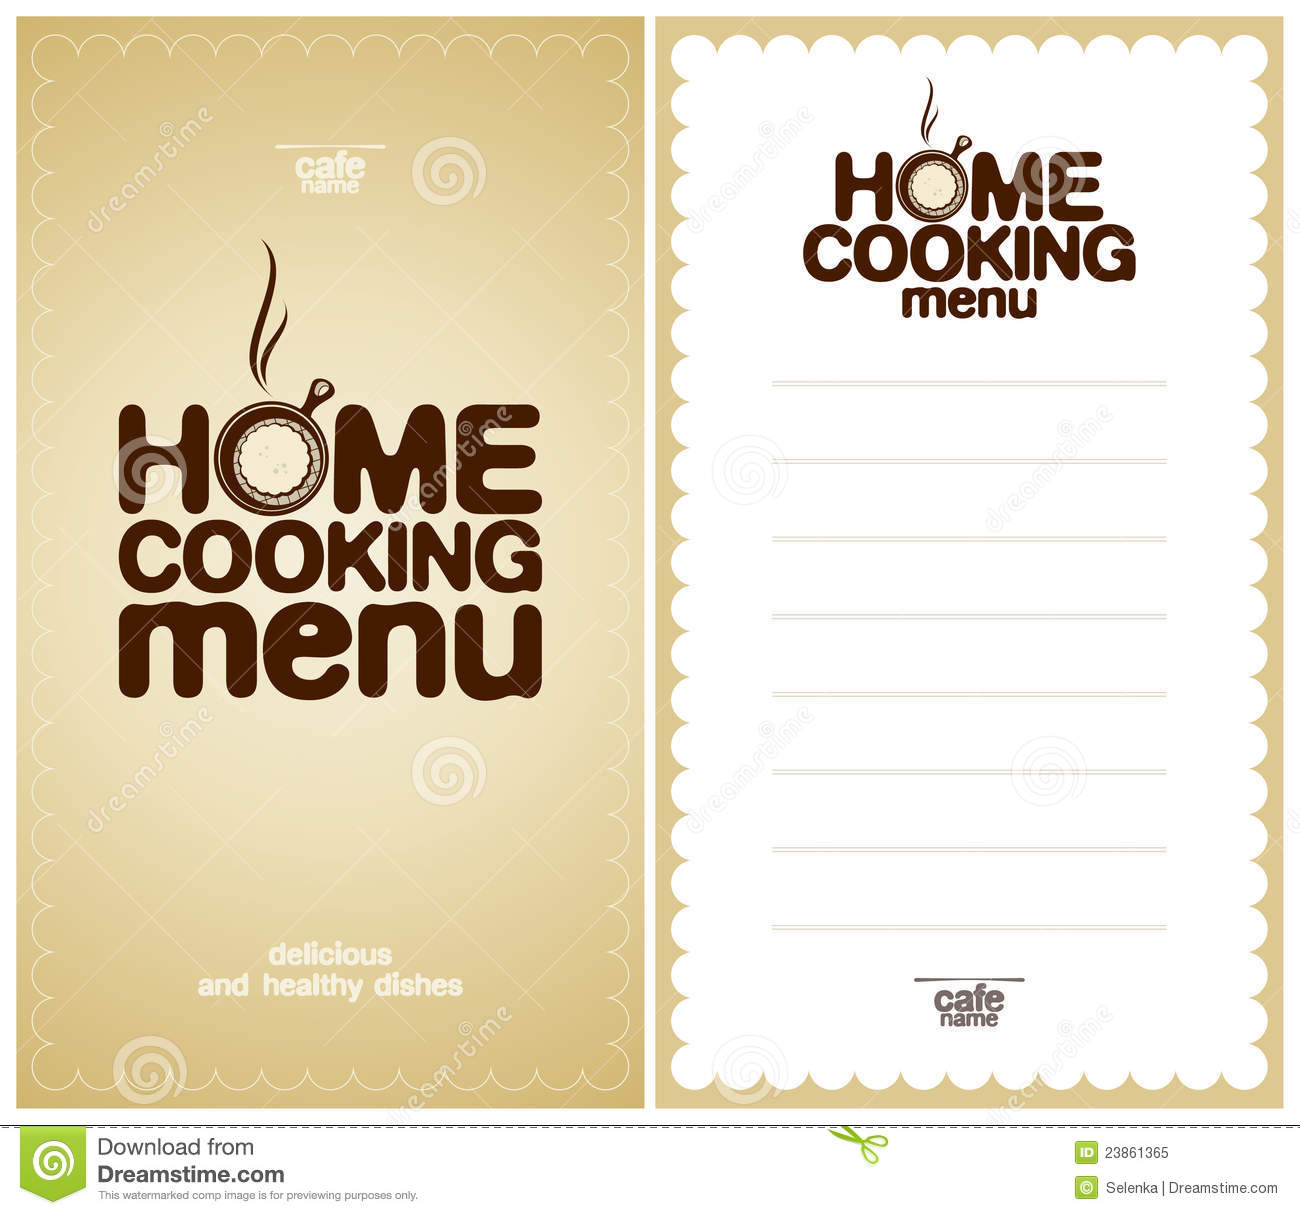 Home Cooking Menu Design Template Royalty Free Stock